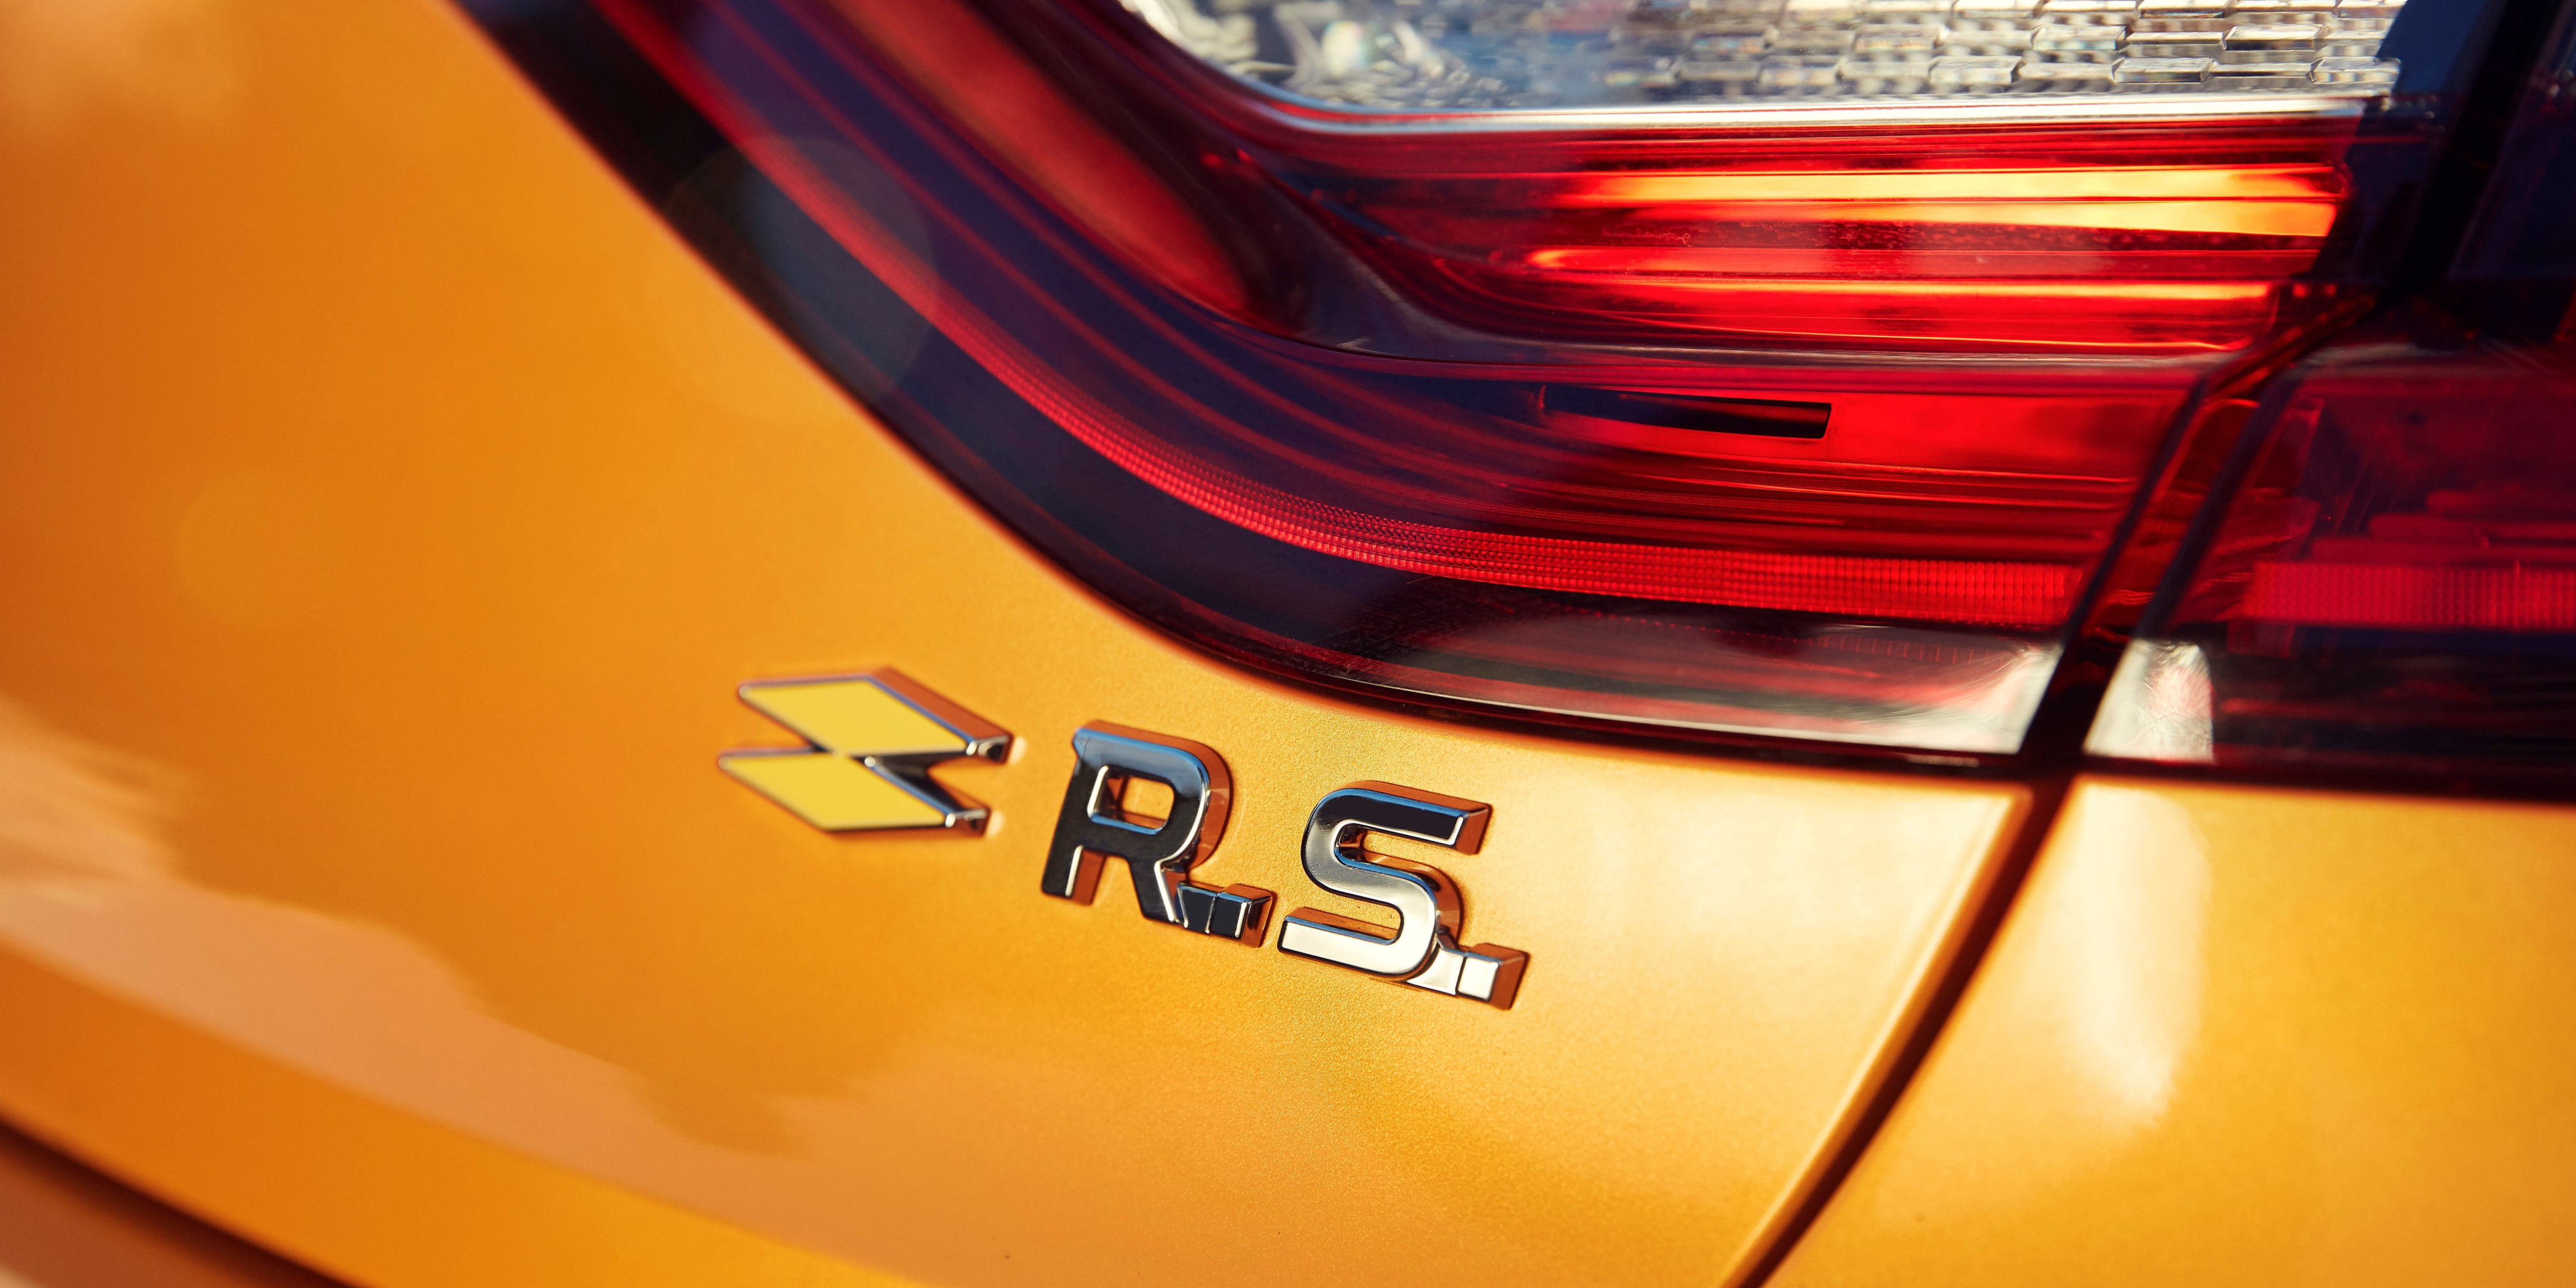 Renault Mégane RS: Best of the breed?